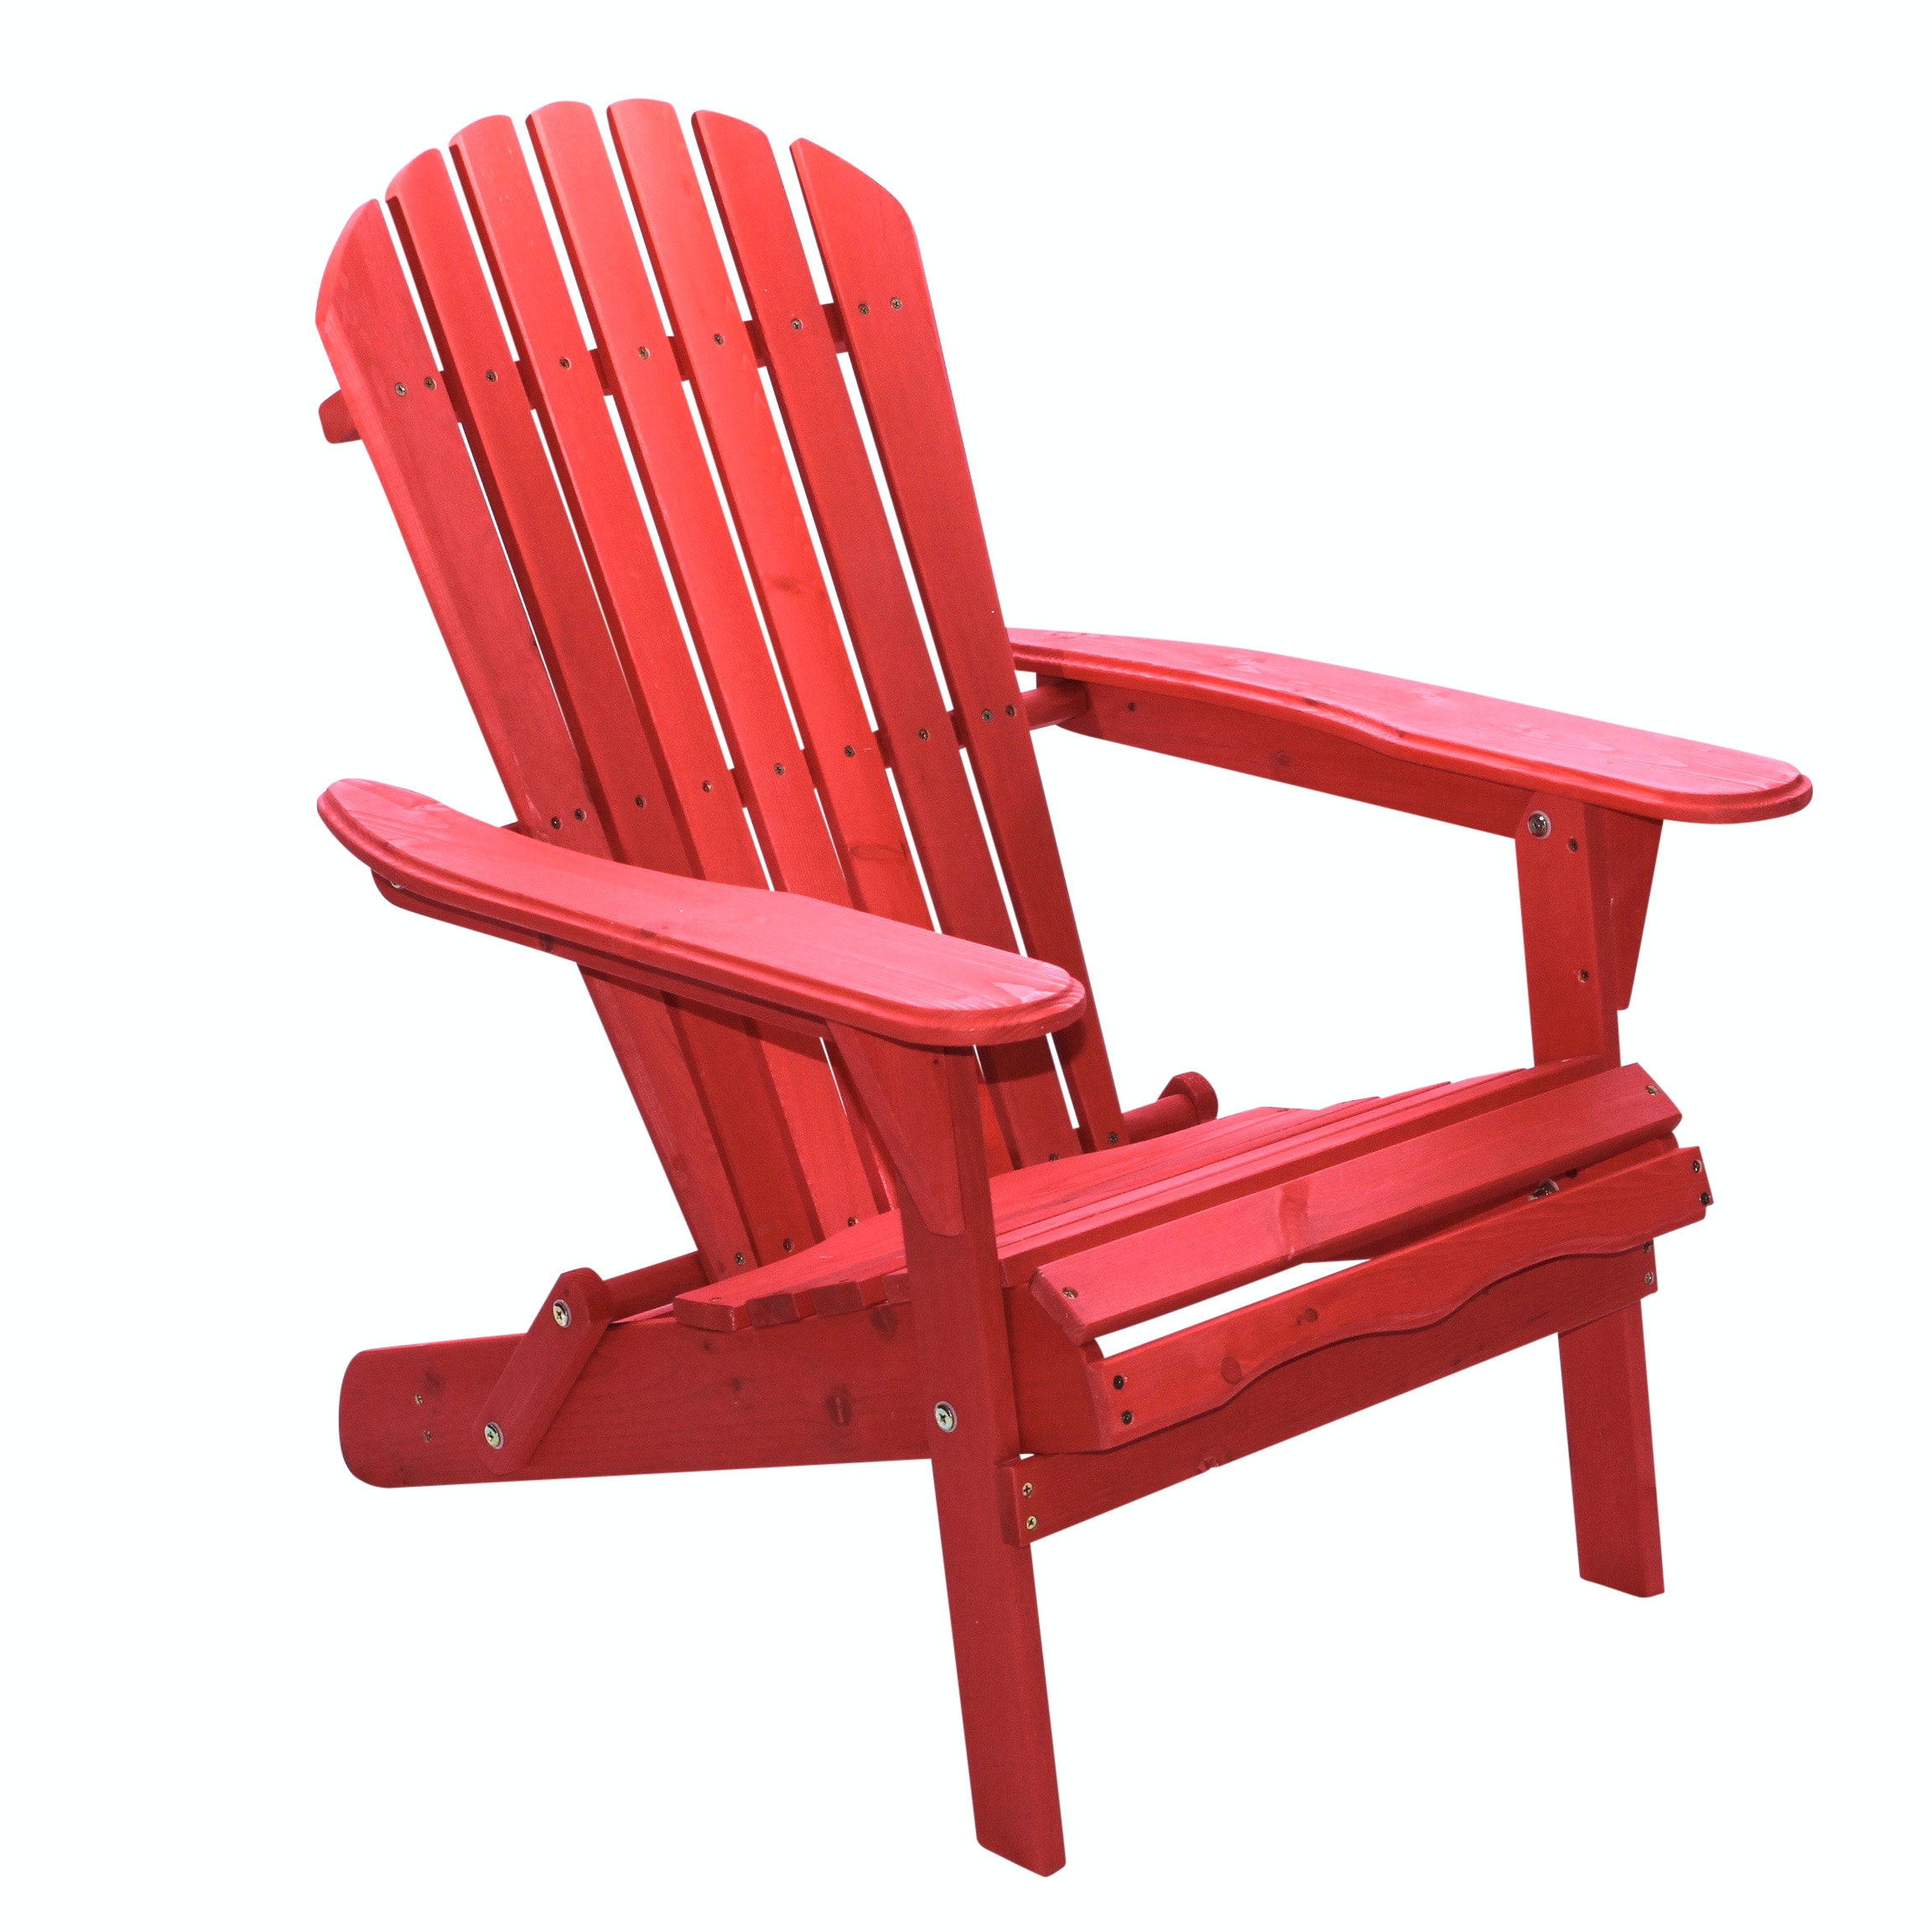 Adirondack Red Painted Chair, Contemporary